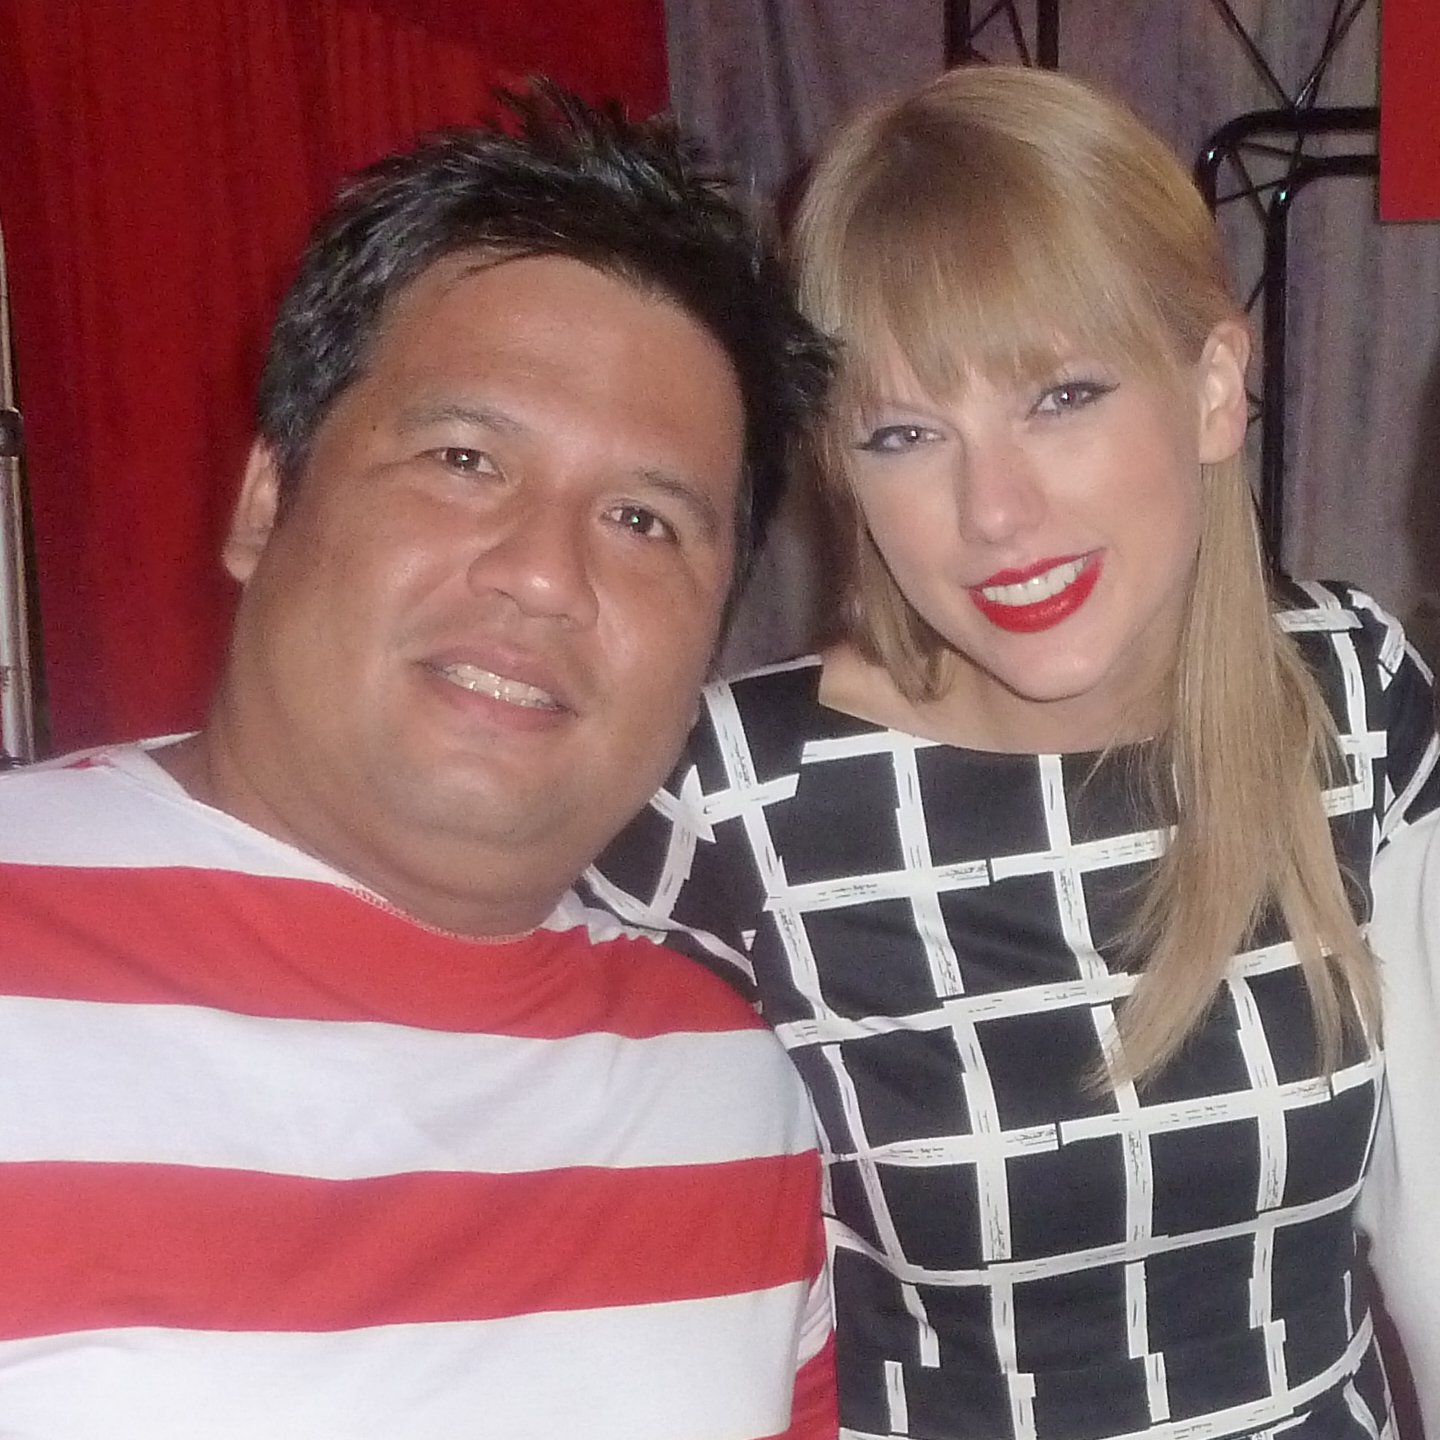 Behind The Red Curtain Meeting Taylor Swift The Swift Agency